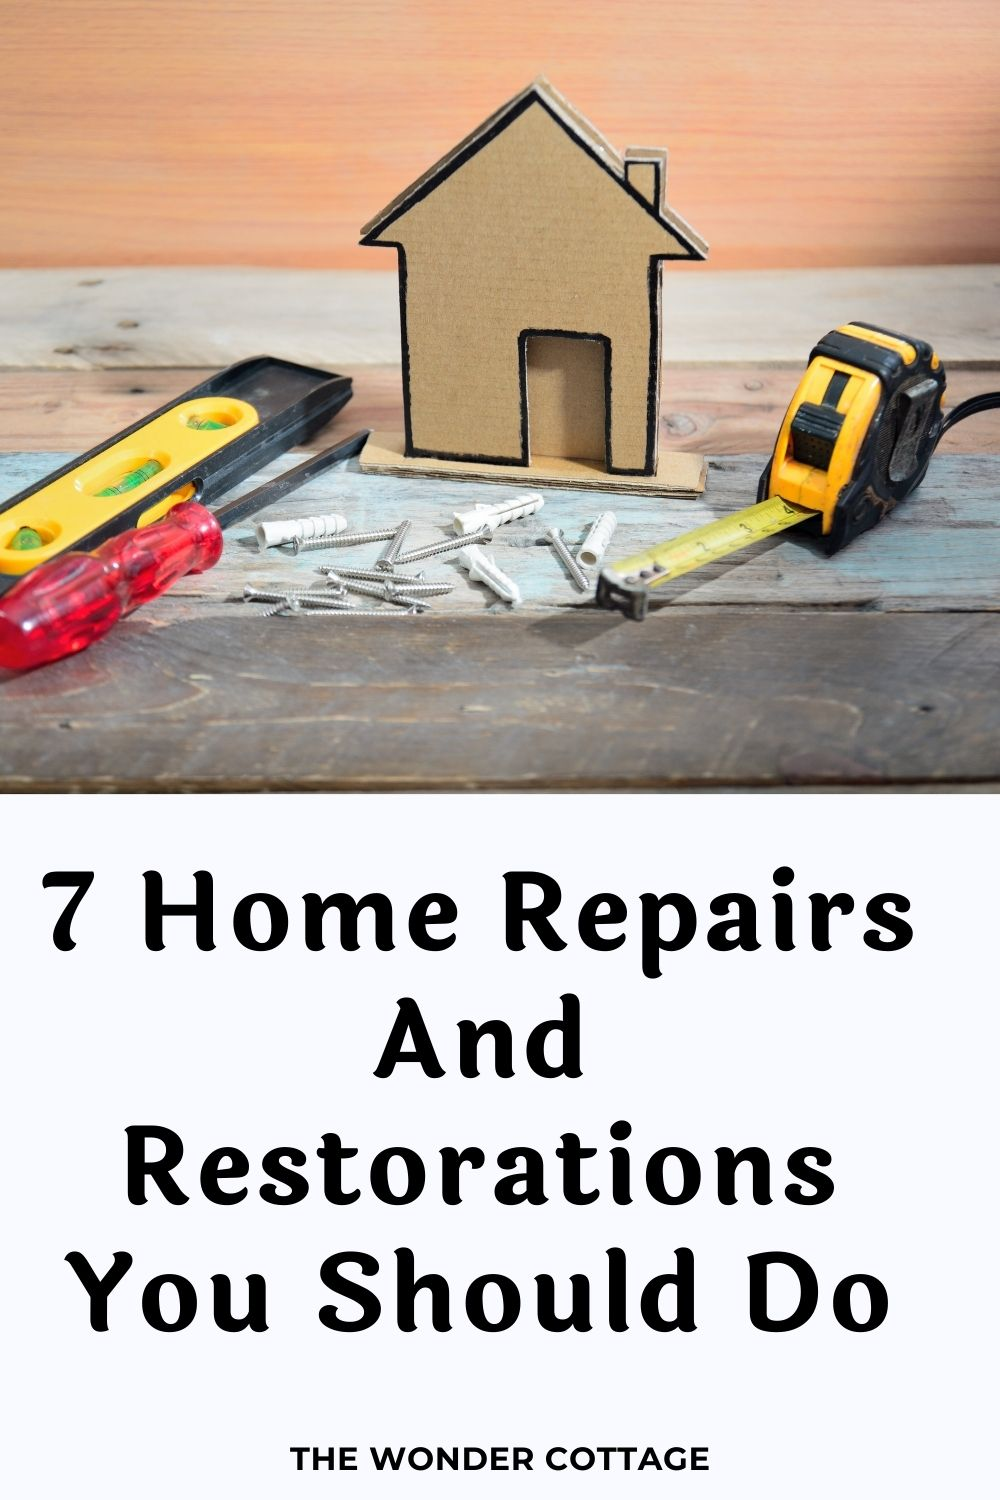 7 home repairs and restorations you should do